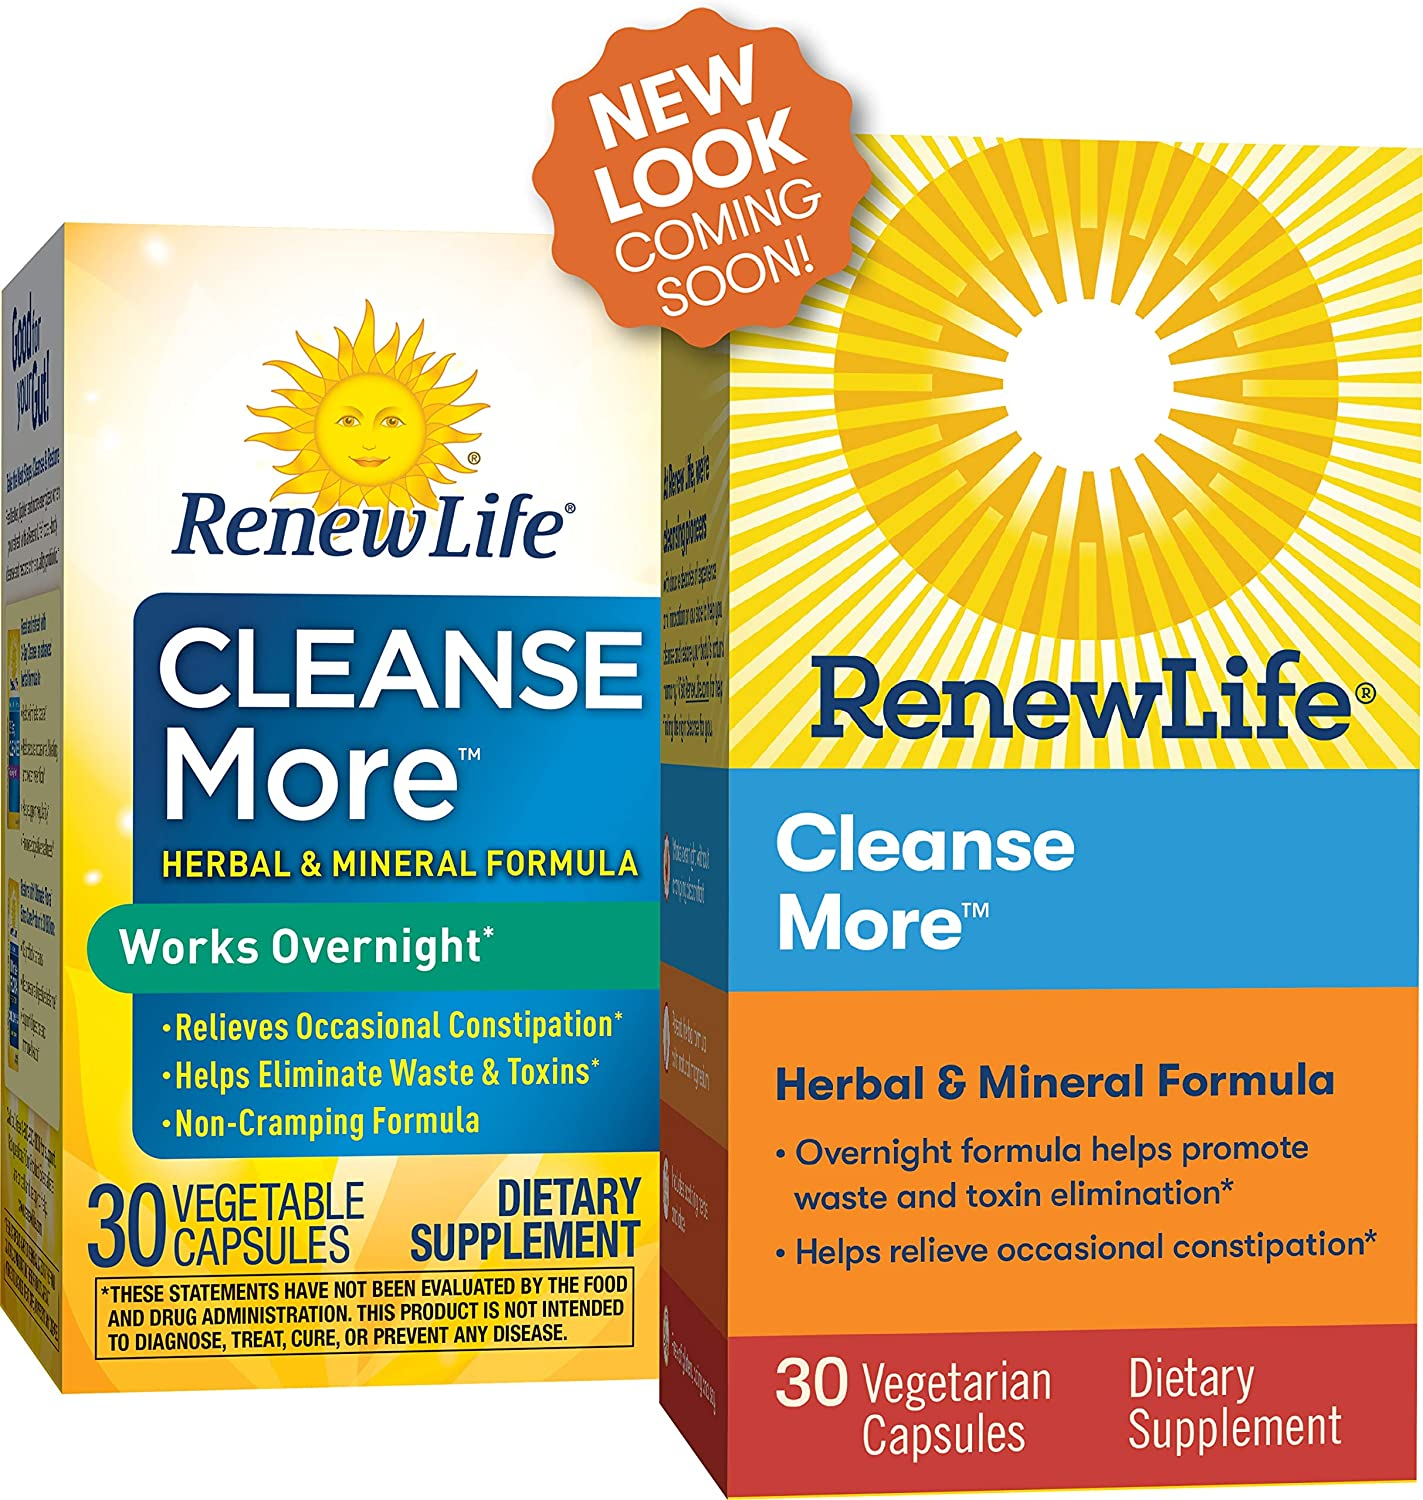 Renew Life Adult Cleanse - Cleanse More, Herbal & Mineral Formula - Overnight Constipation Relief - Gluten, Dairy & Soy Free - 30 Vegetarian Capsules (Packaging May Vary)